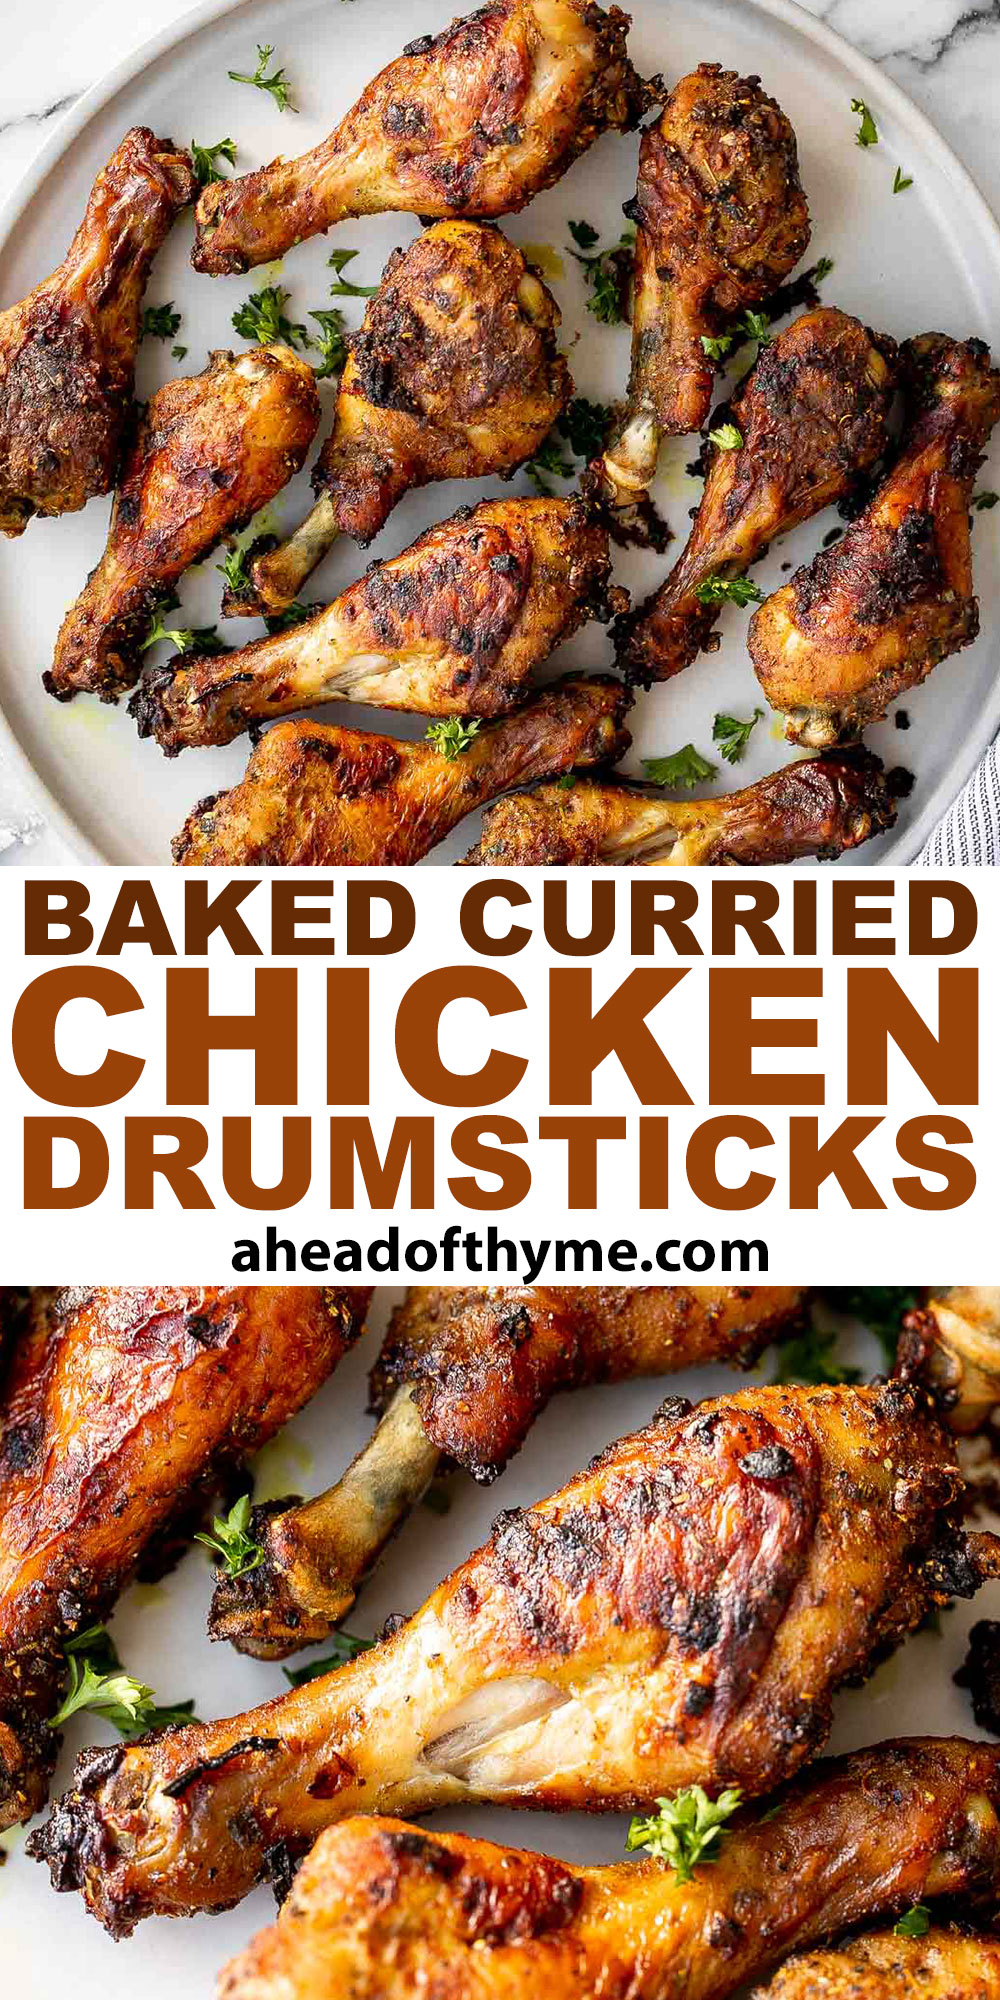 Baked Curried Chicken Drumsticks